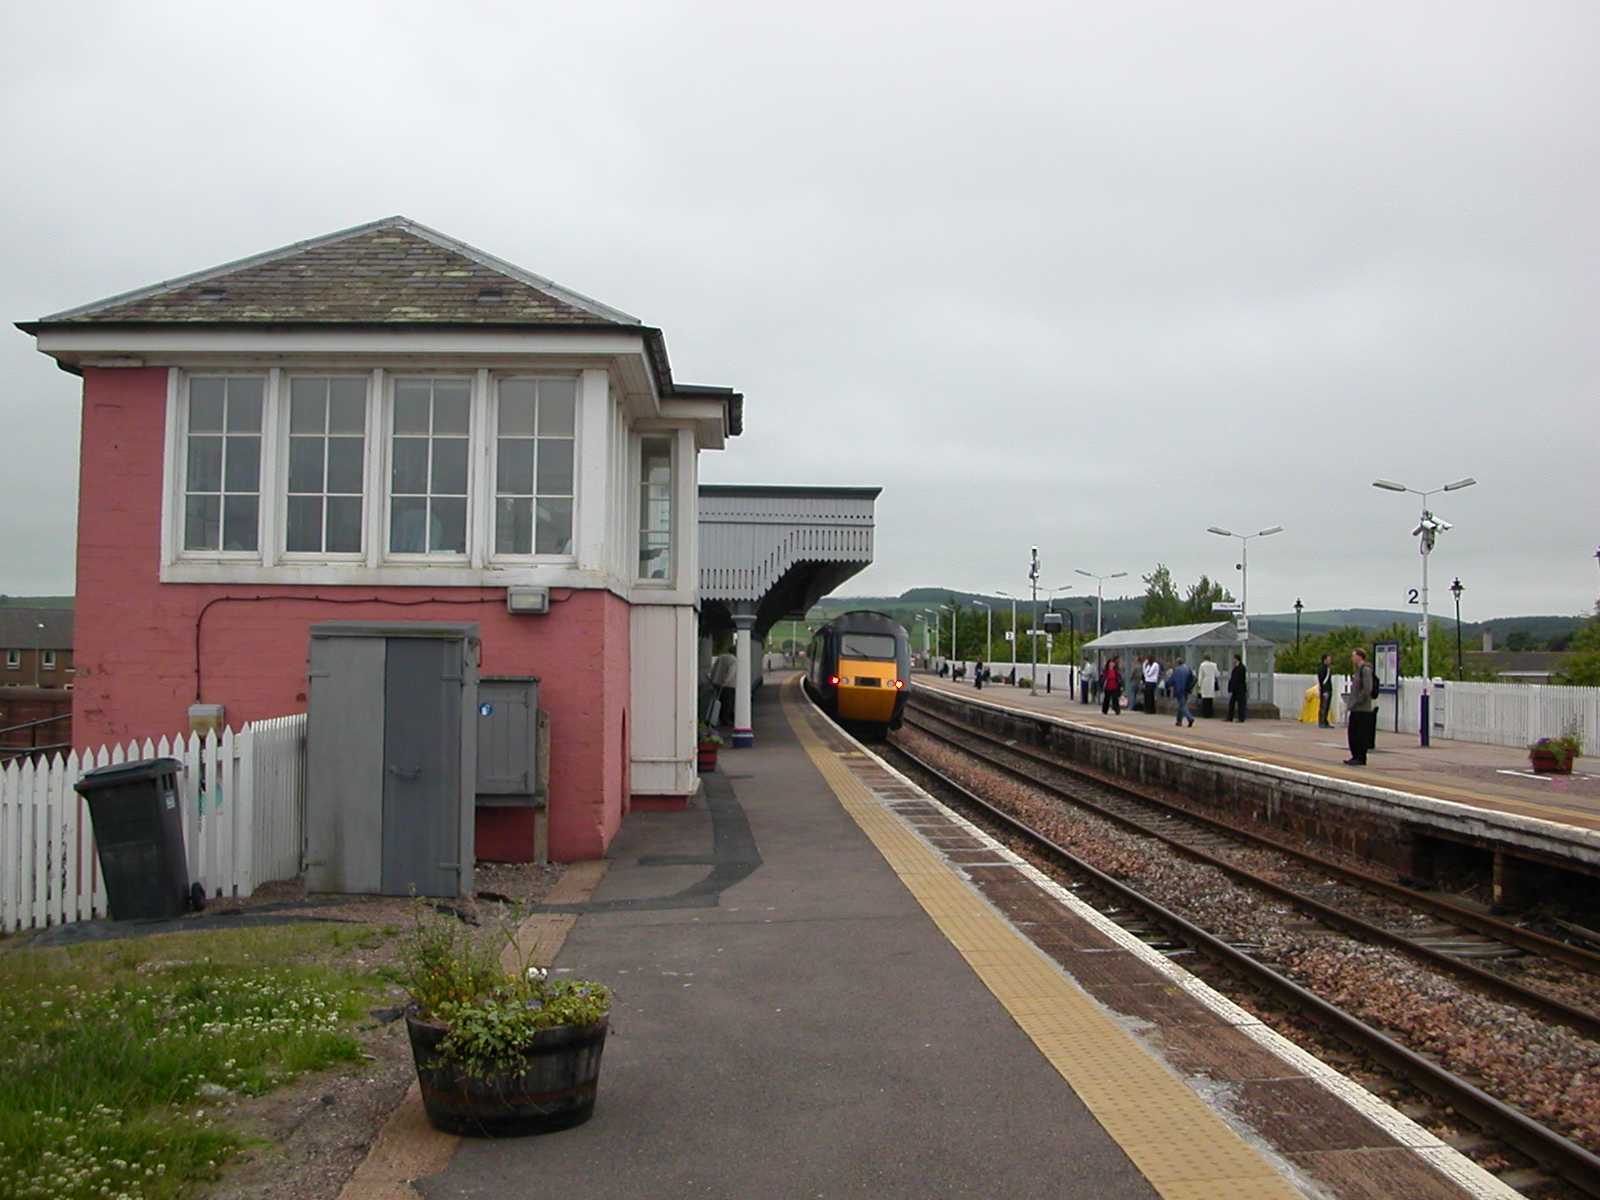 https://upload.wikimedia.org/wikipedia/commons/2/24/Stonehaven_Railway_Station_03.JPG